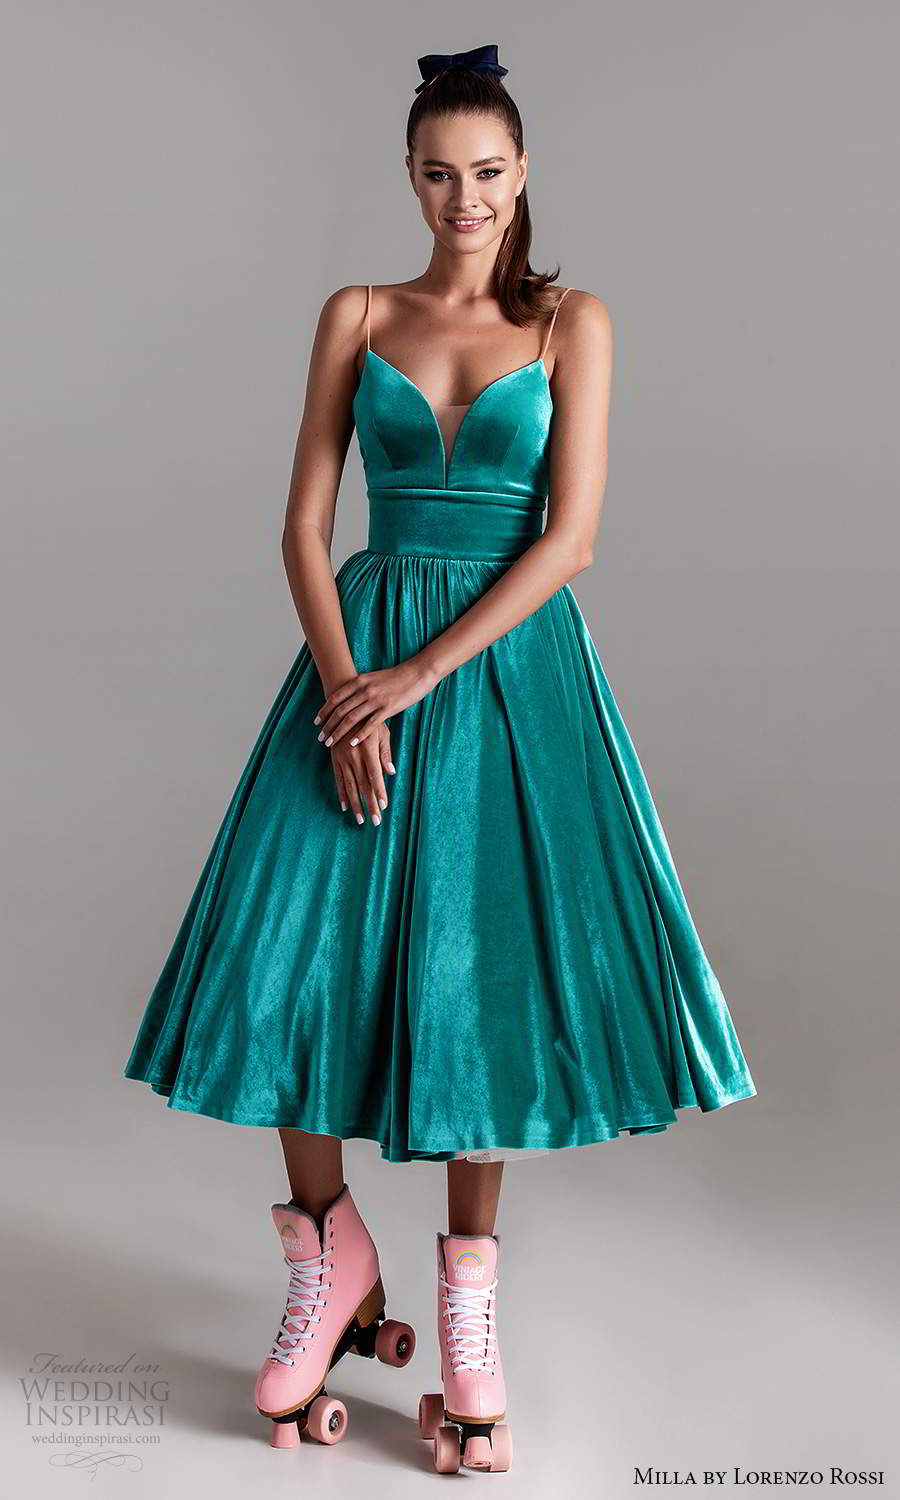 milla by lorenzo rossi 2020 rtw sleeveless plunging sweetheart neckline corset bodice a line ball gown tea length evening dress green color (29) mv